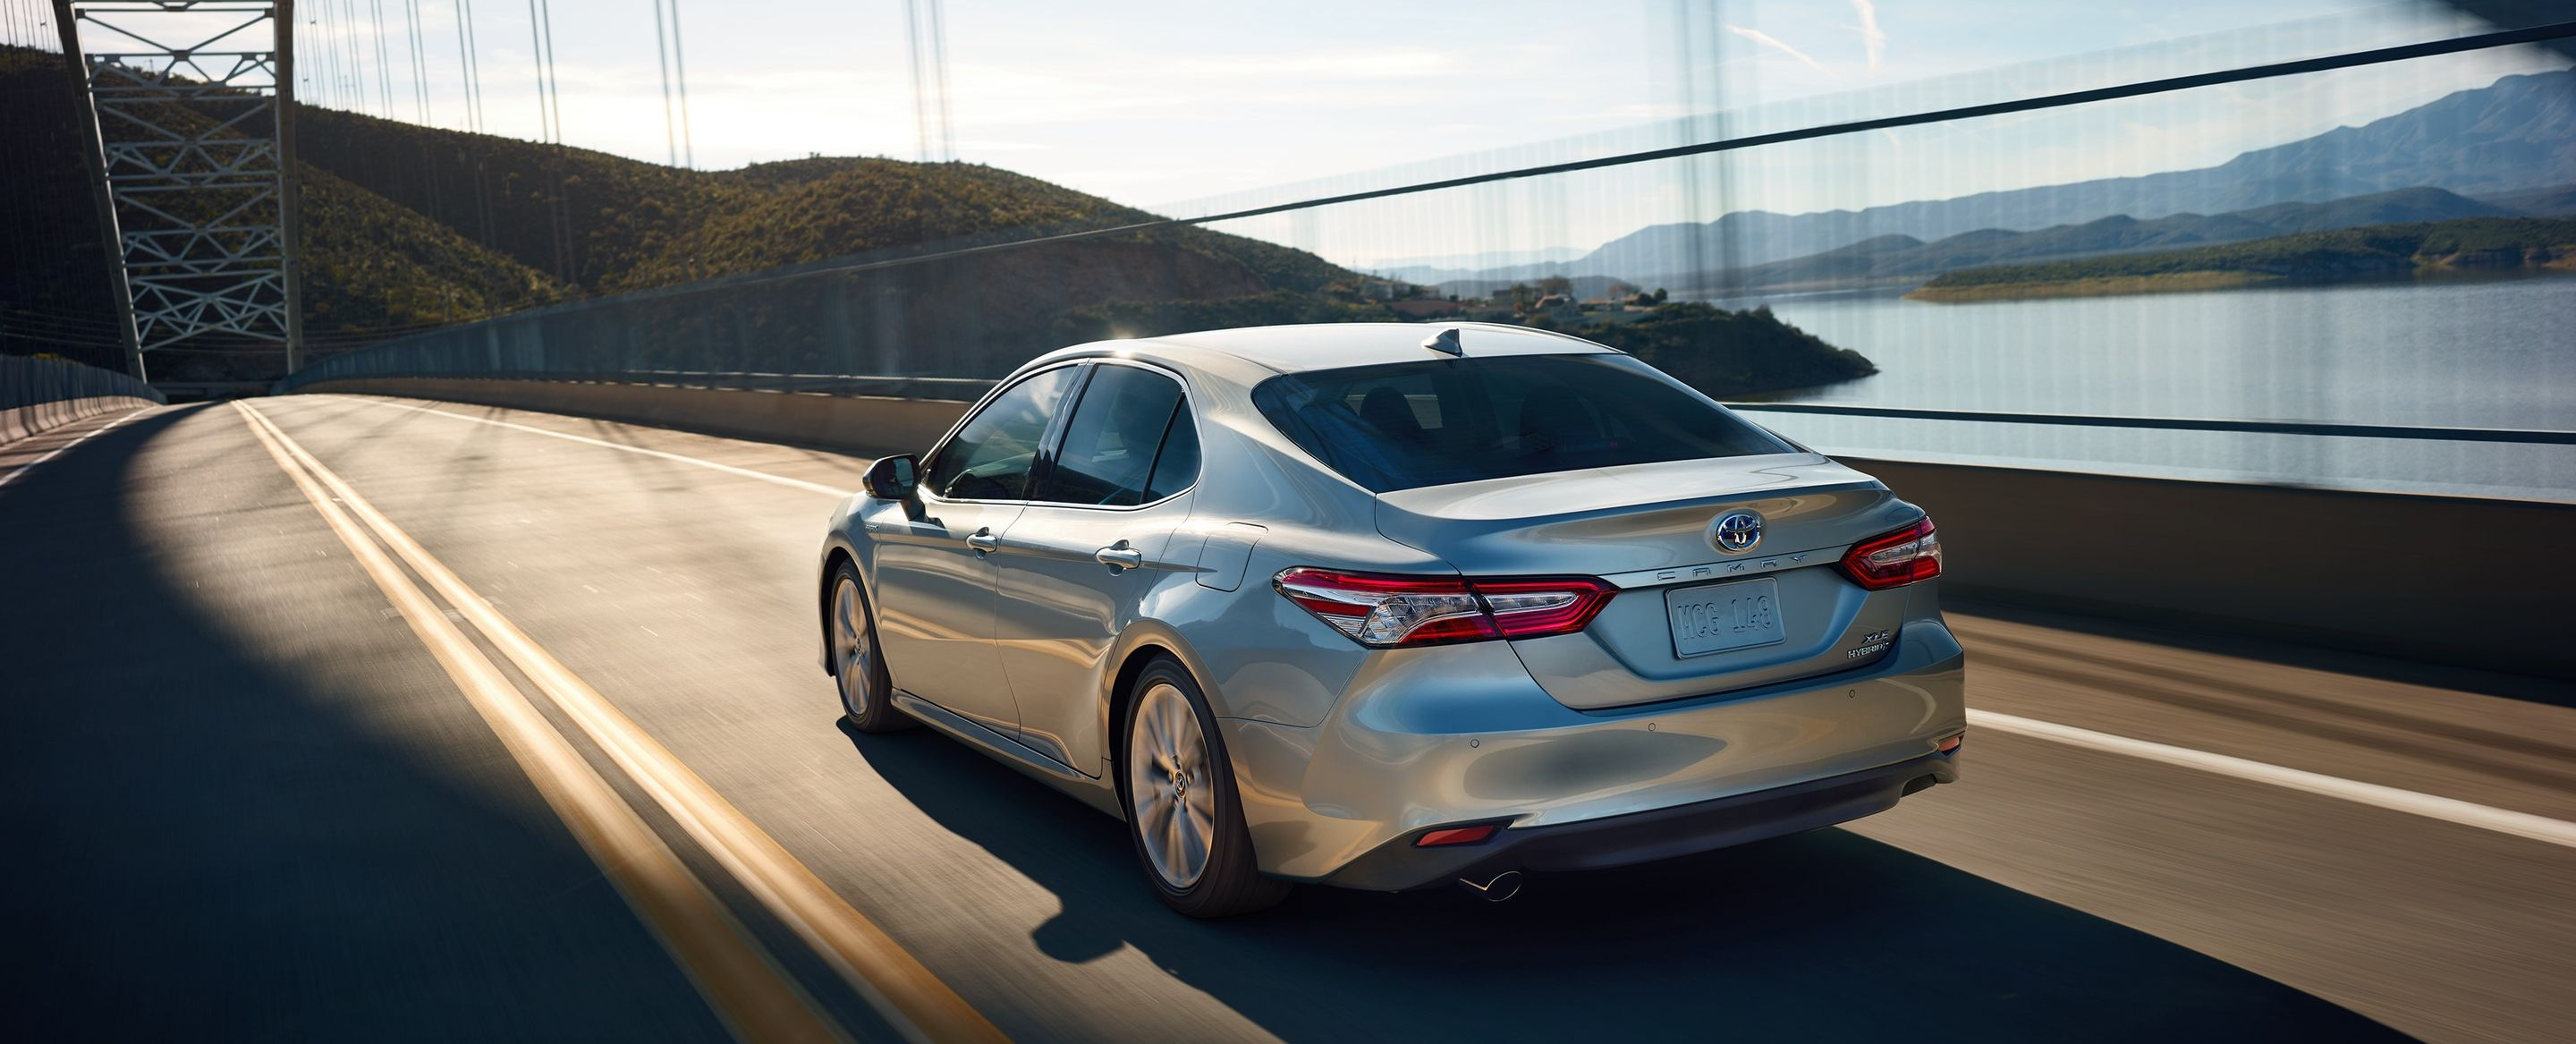 2019 Toyota Camry Leasing in Kansas City, MO, 64114